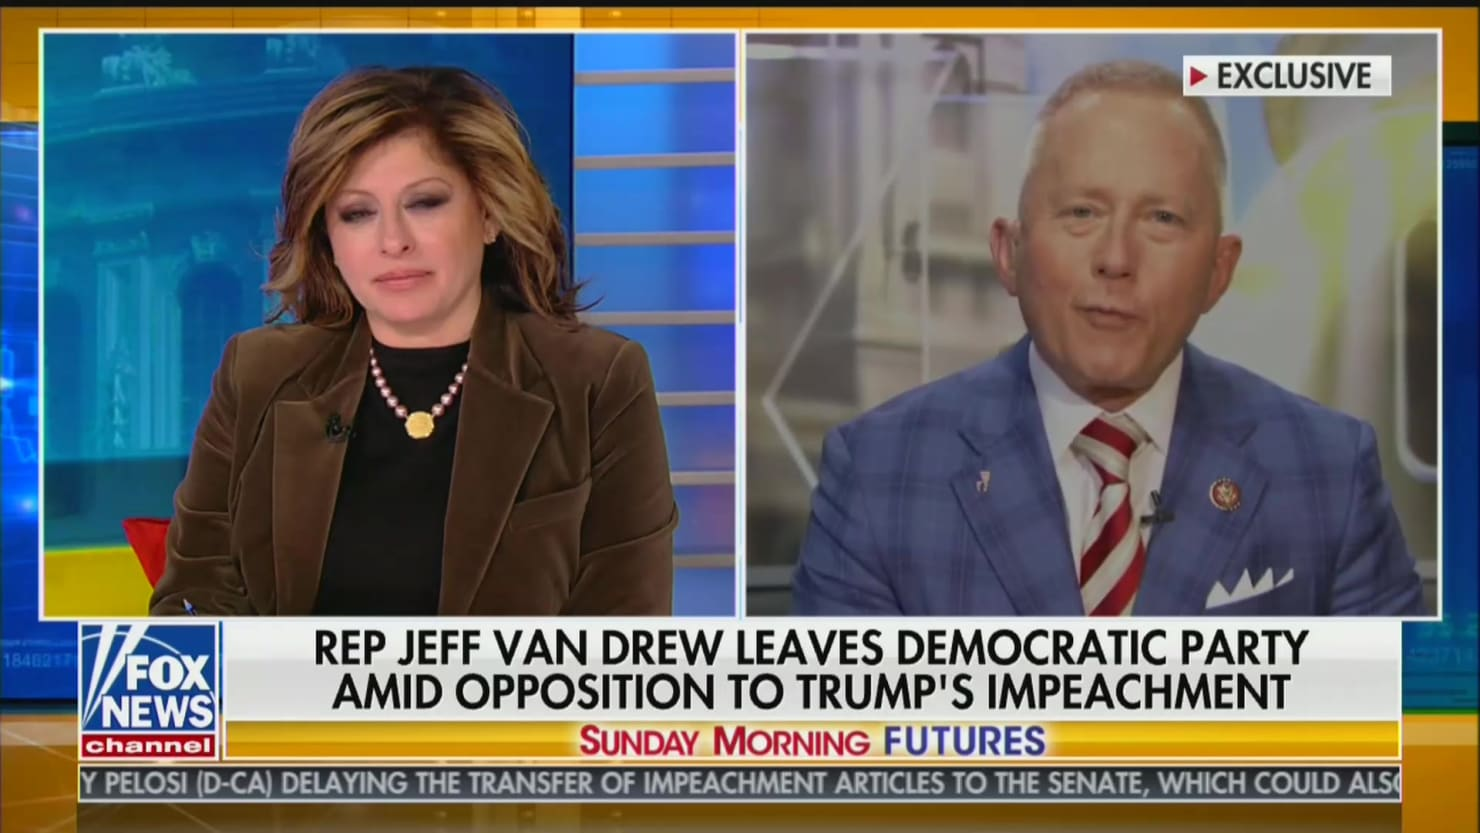 Rep. Jeff Van Drew Gushes Over Fox News Host, Says 'I'm So Proud to Be Associated With You!'